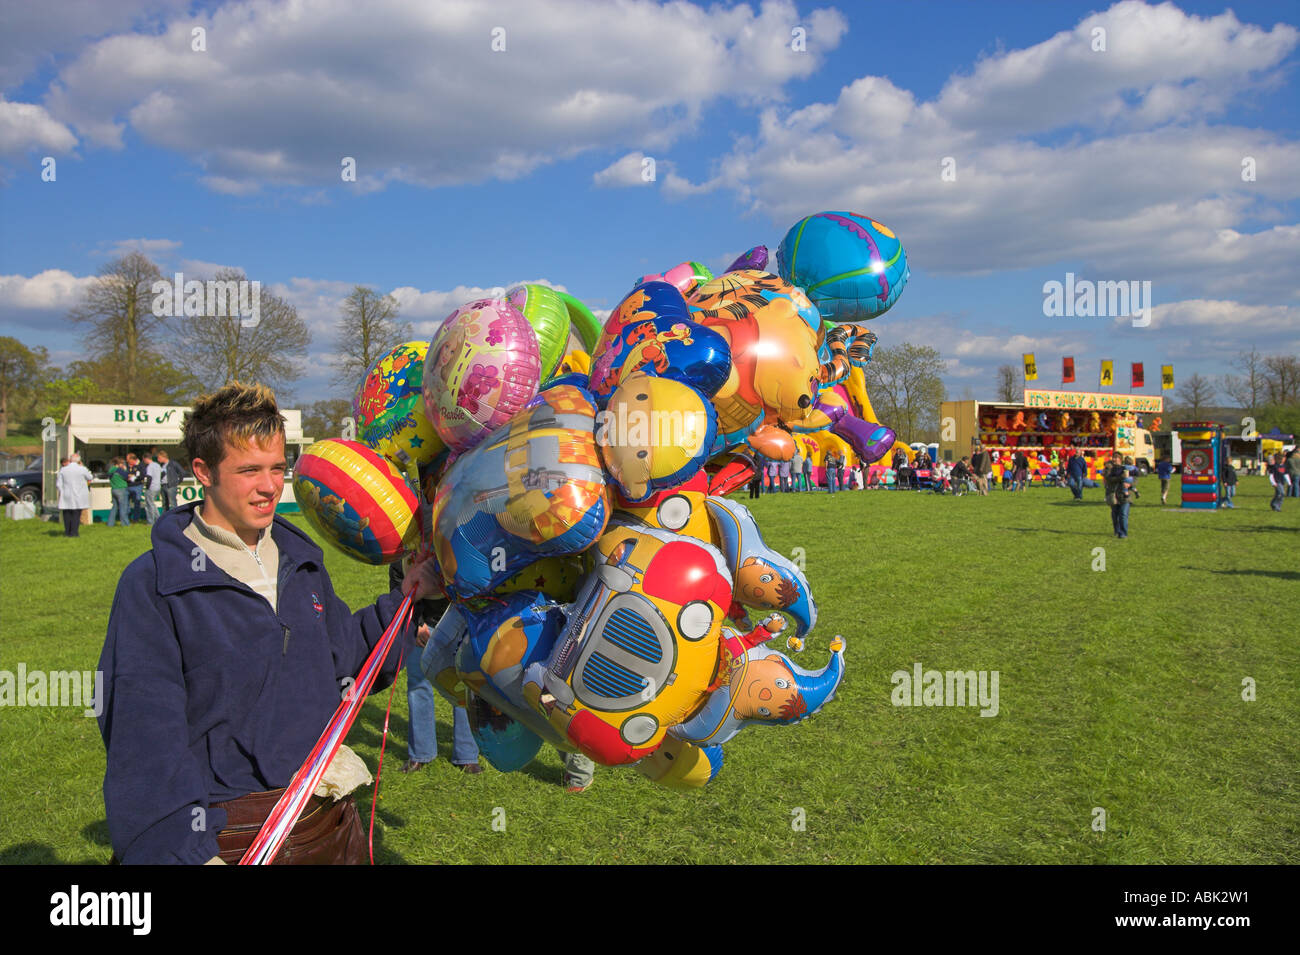 Balloon seller at local event - Stock Image